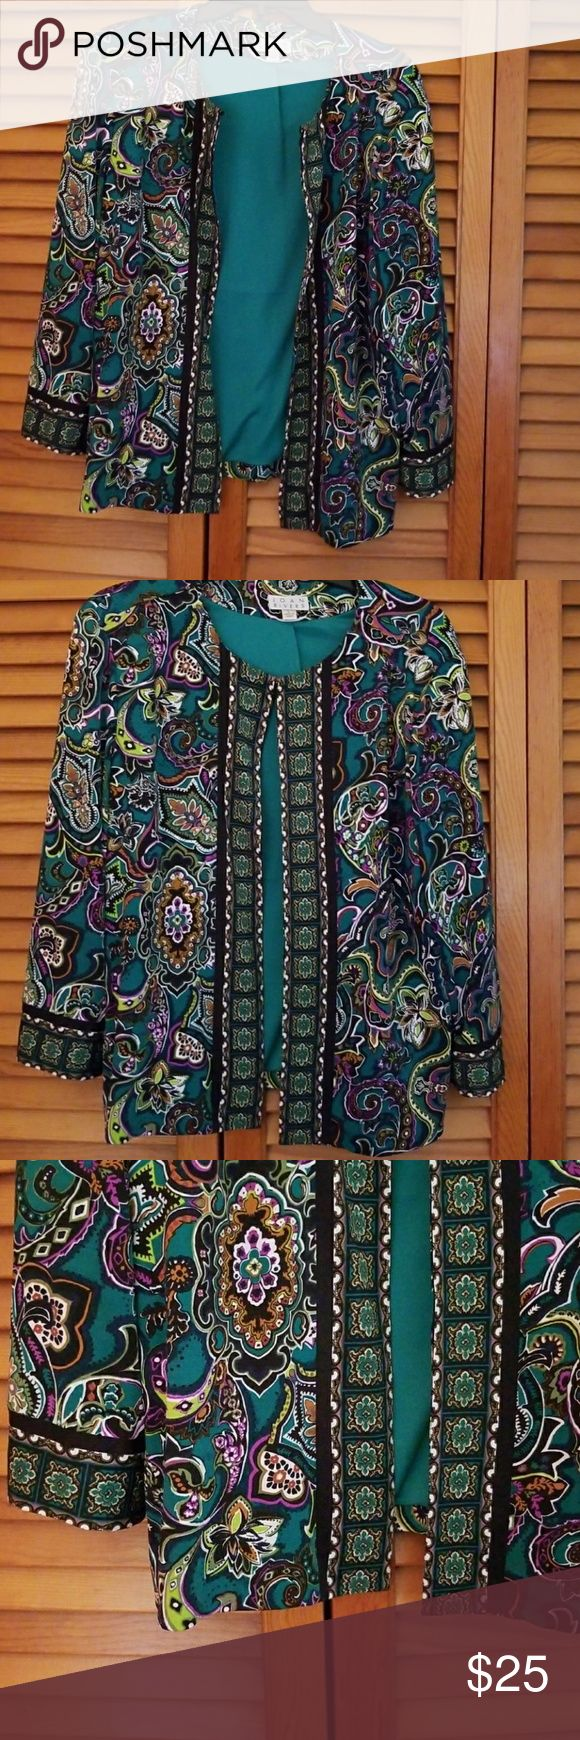 Never worn Joan Rivers Jacket Size L Beautiful  dressy jacket  Very soft Detailed information and measurements can be found on the QVC website under item # A255146 QVC has this on clearance for $29 Price firm unless bundle  Never Worn! Joan Rivers Jackets & Coats